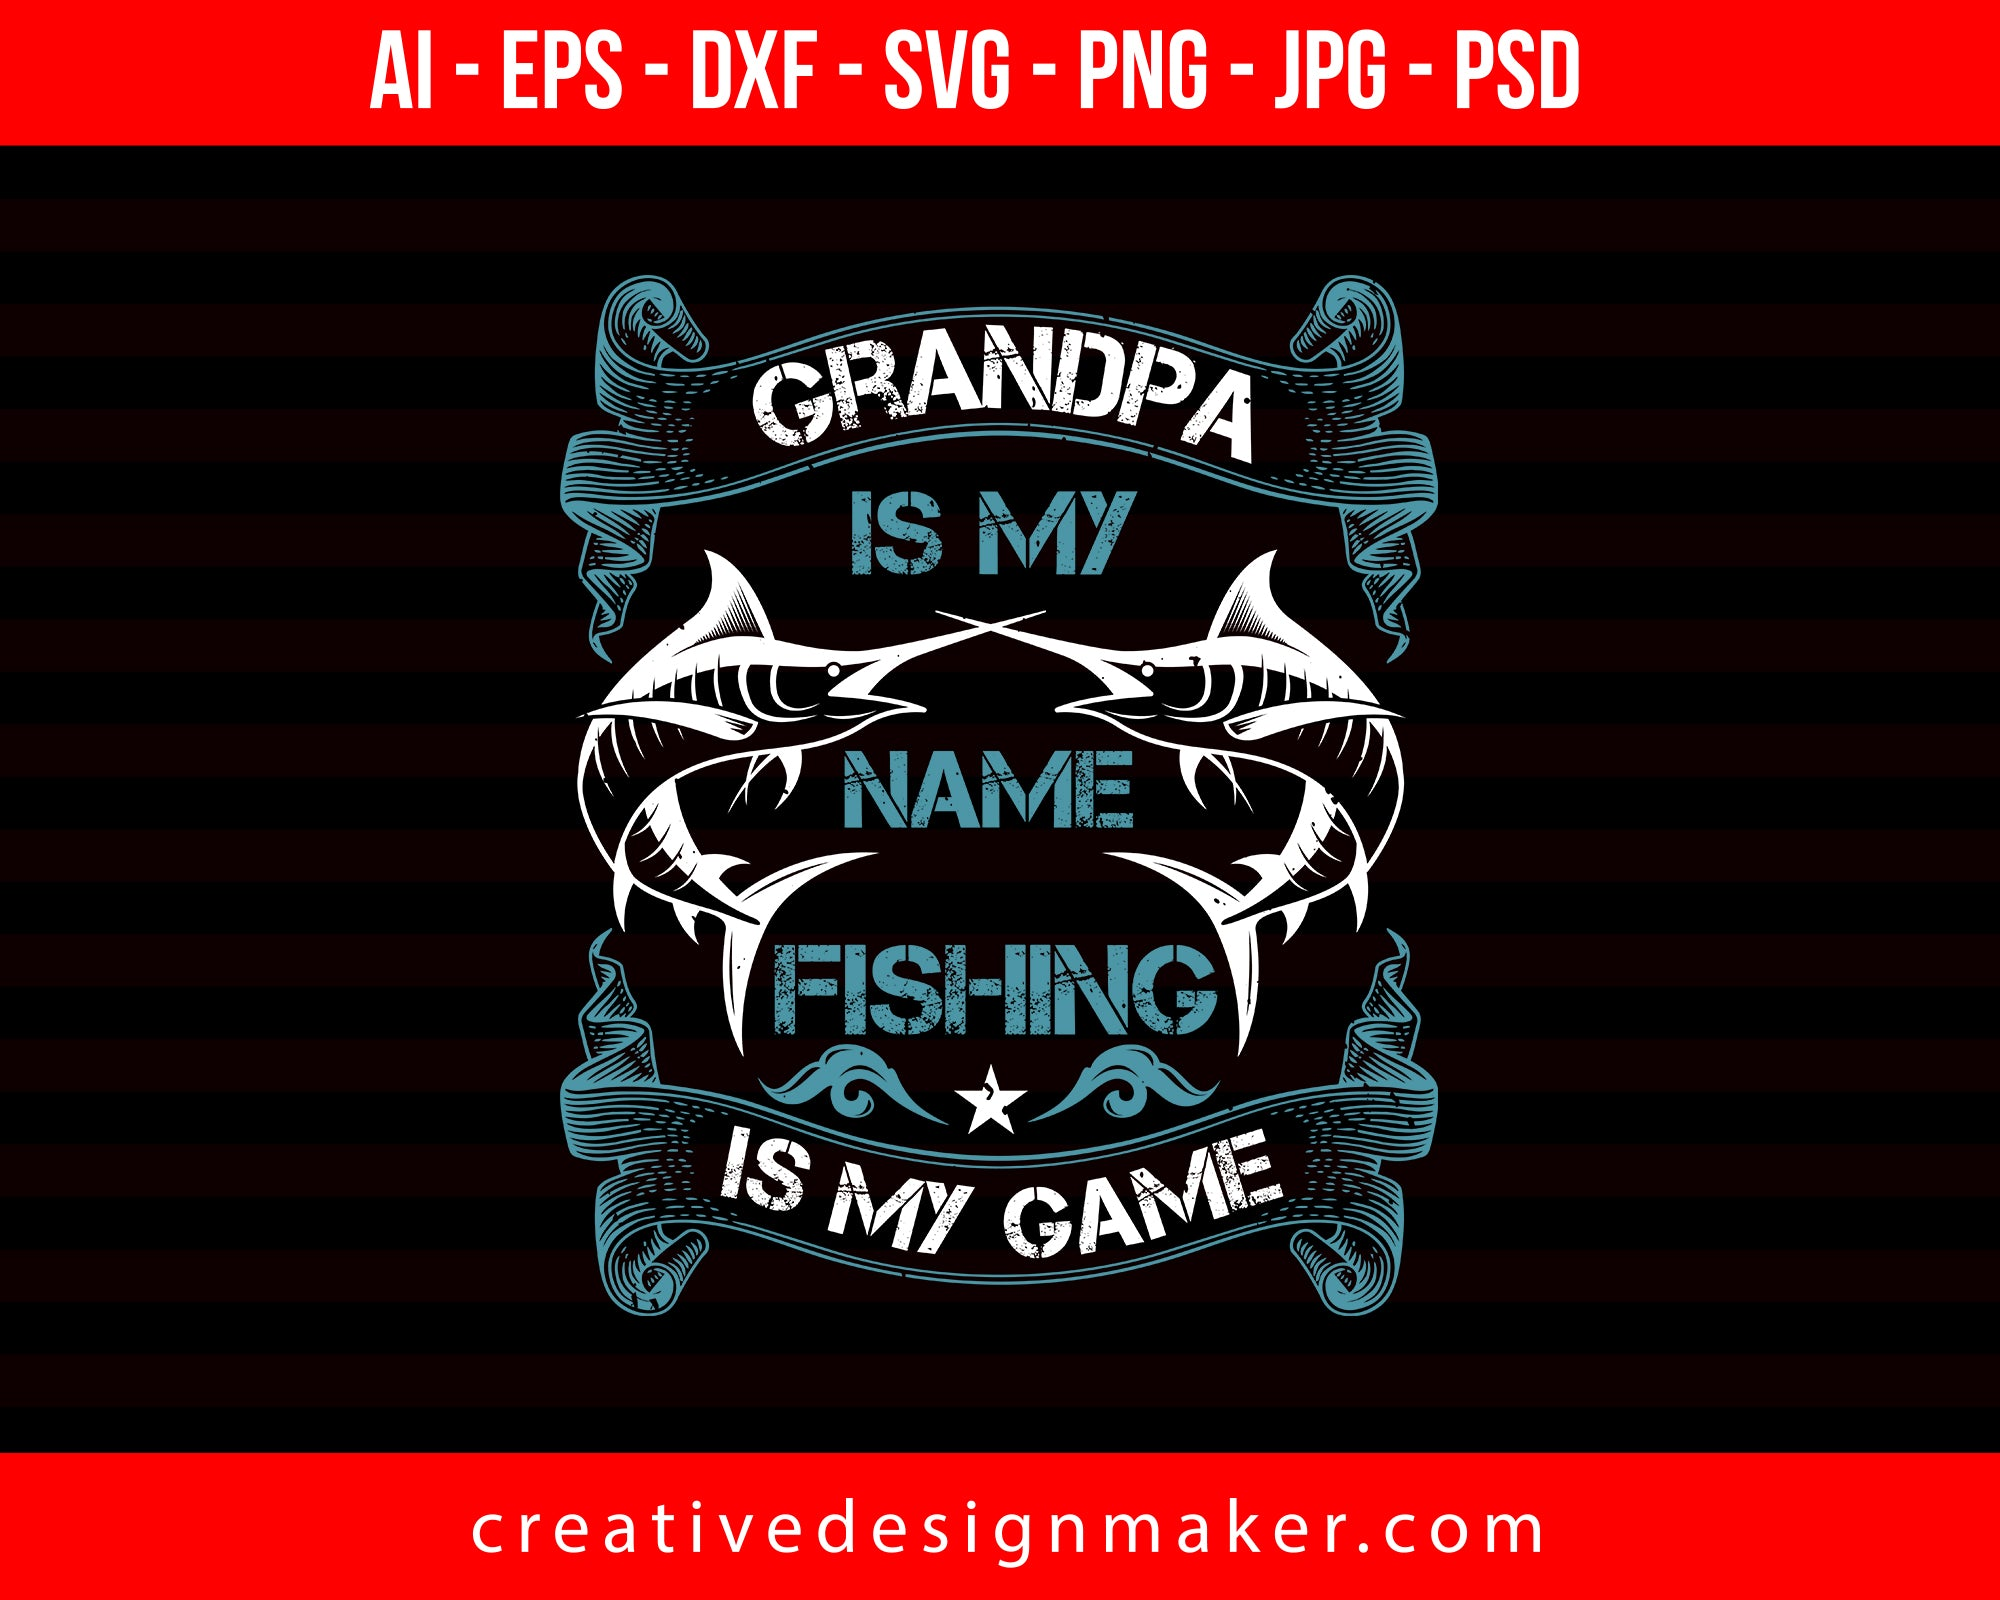 Download Grandpa Is My Name Fishing Is My Game Creativedesignmaker